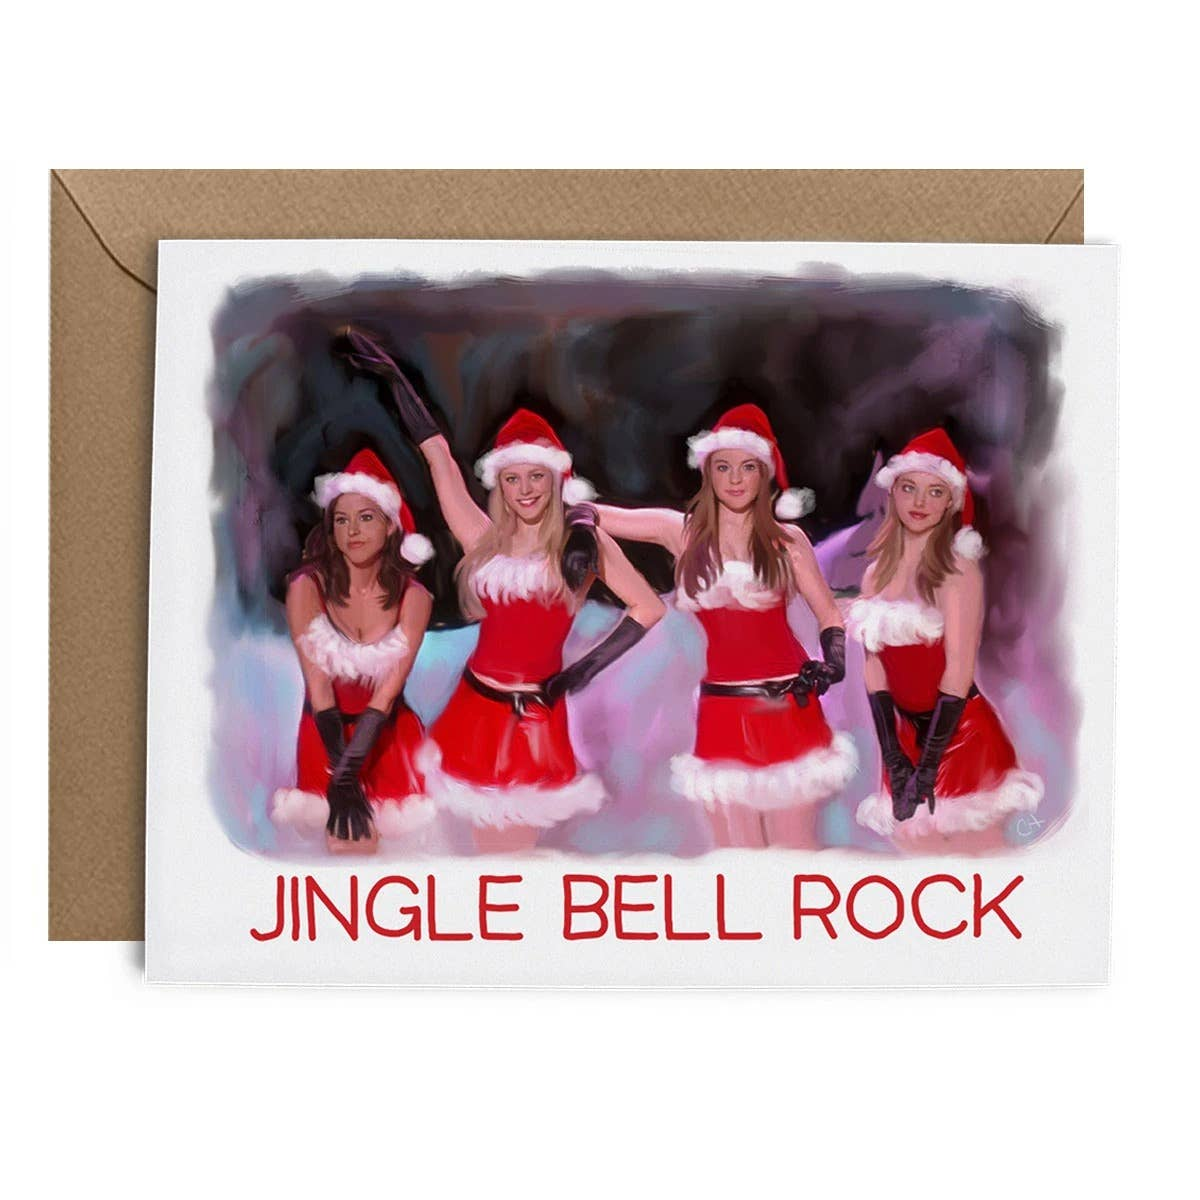 Jingle Bell Rock Girls Card